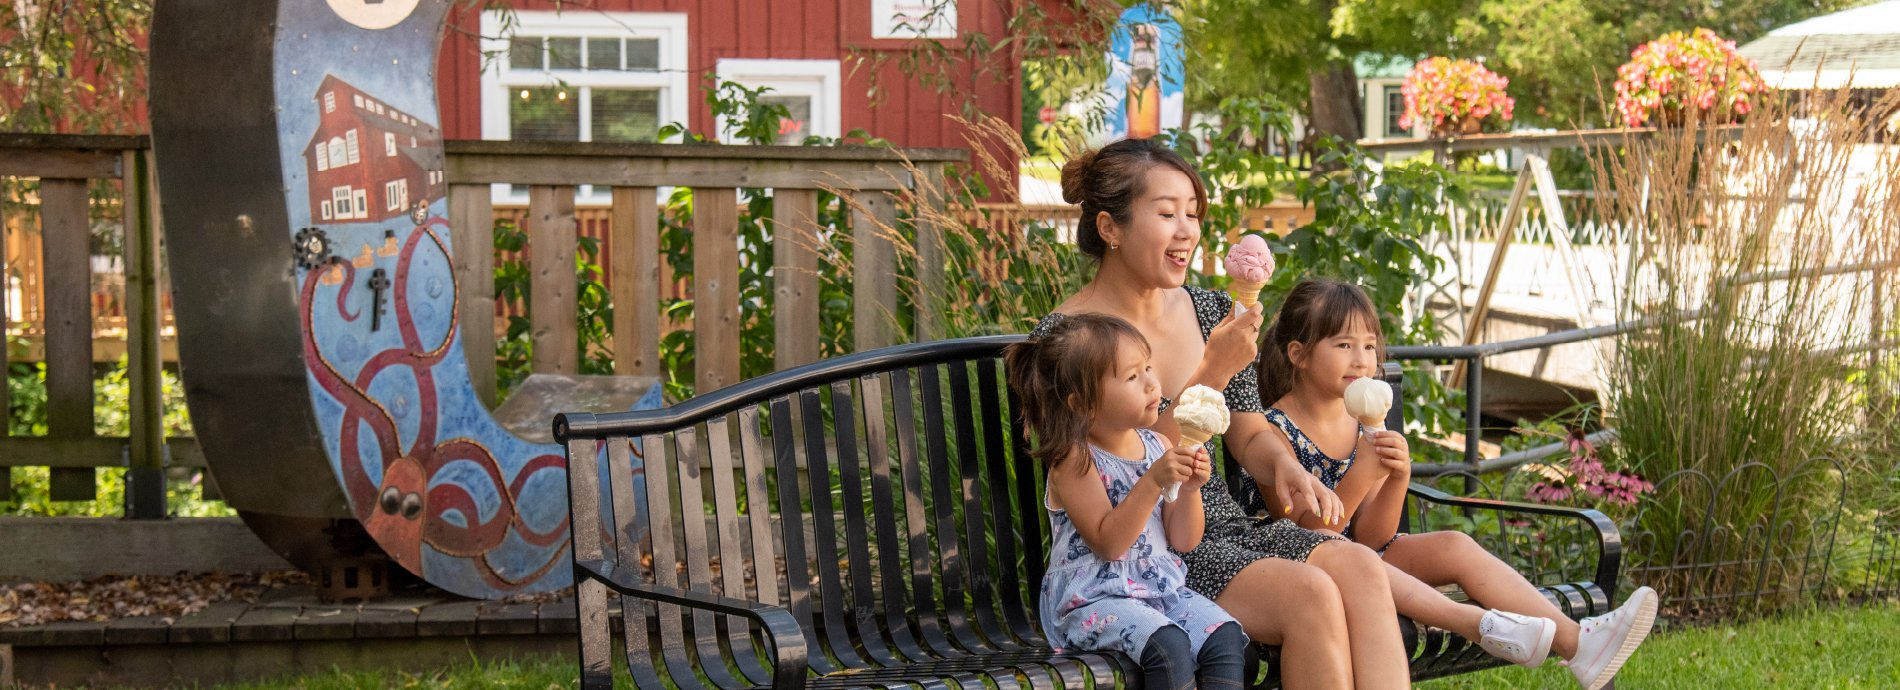 family sitting on a bench eating ice cream